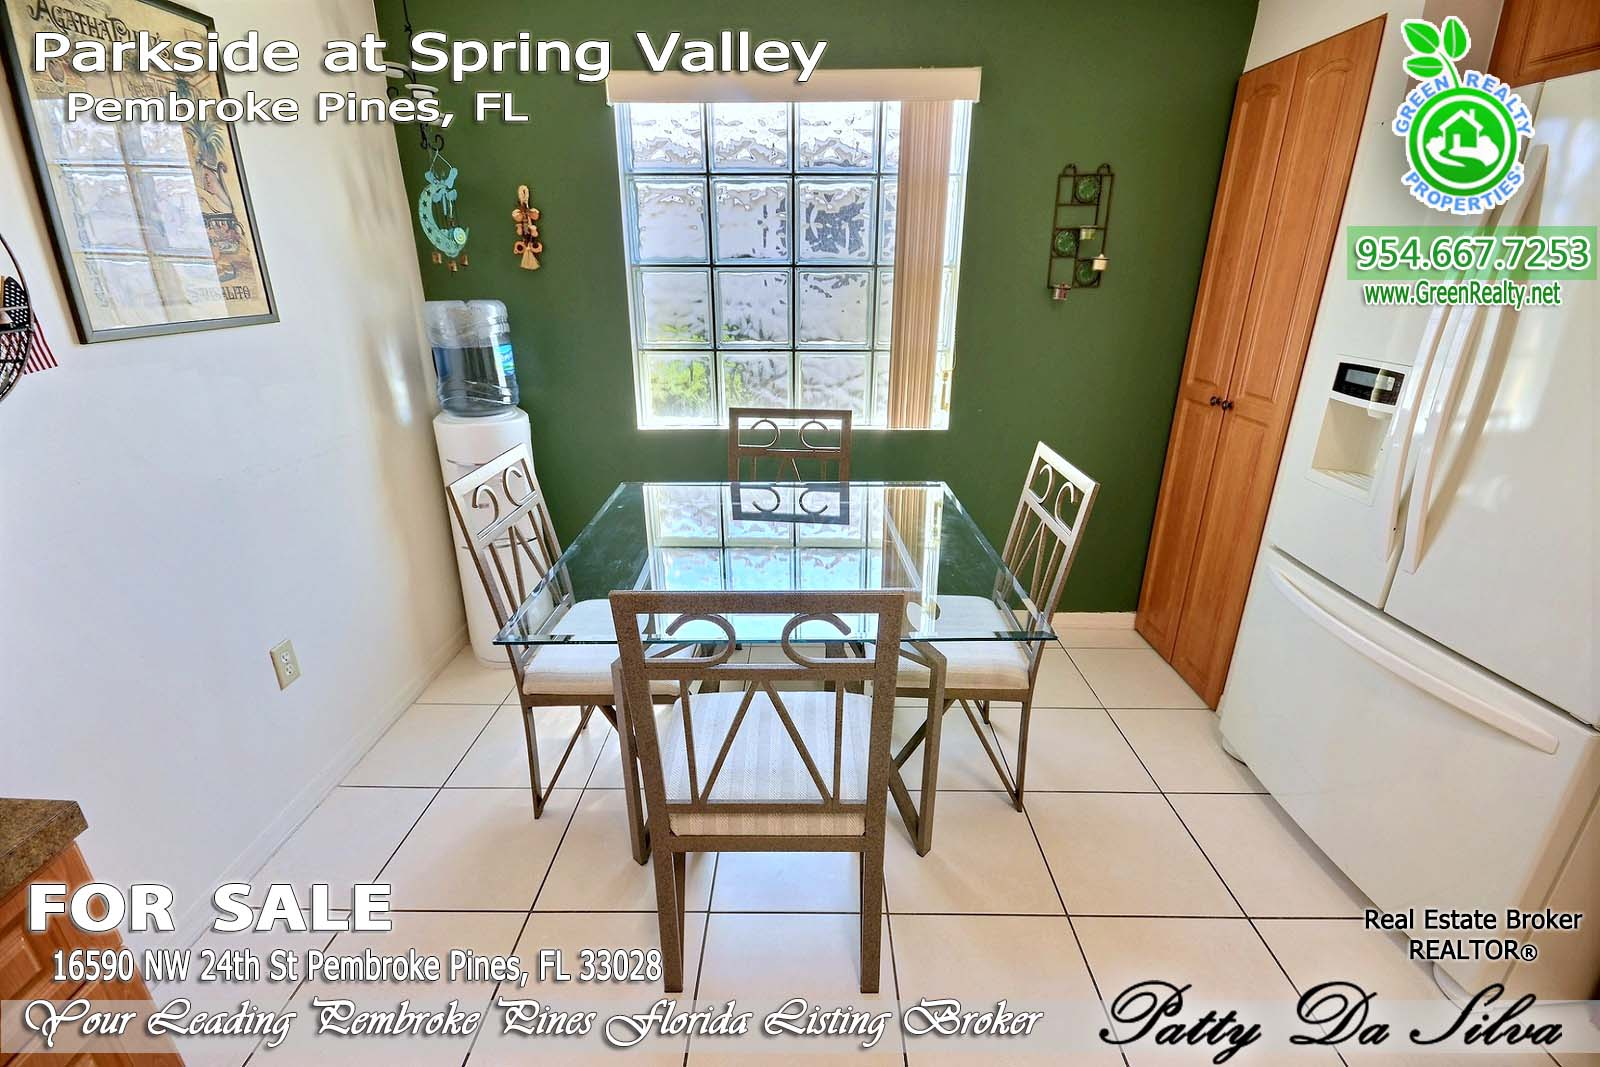 Parkside at Spring Valley Homes For Sale - Pembroke Pines Florida (15)